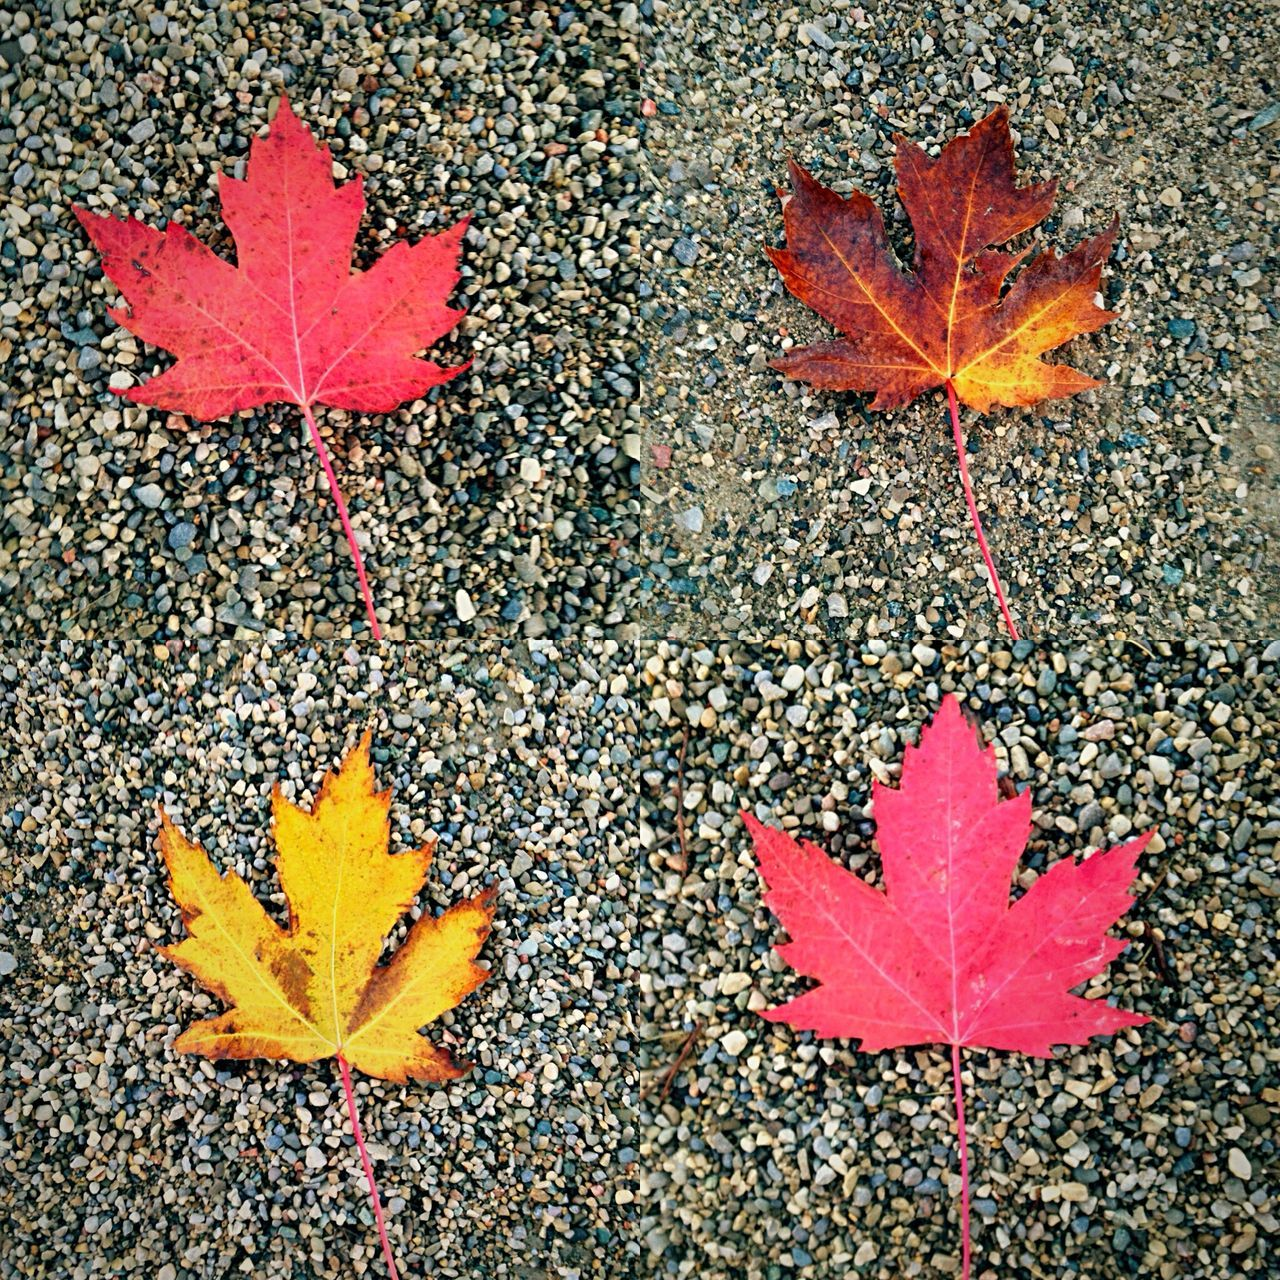 leaf, autumn, change, maple leaf, maple, leaves, dry, nature, beauty in nature, fallen, outdoors, day, scenics, close-up, no people, maple tree, tree, red, fragility, ice hockey